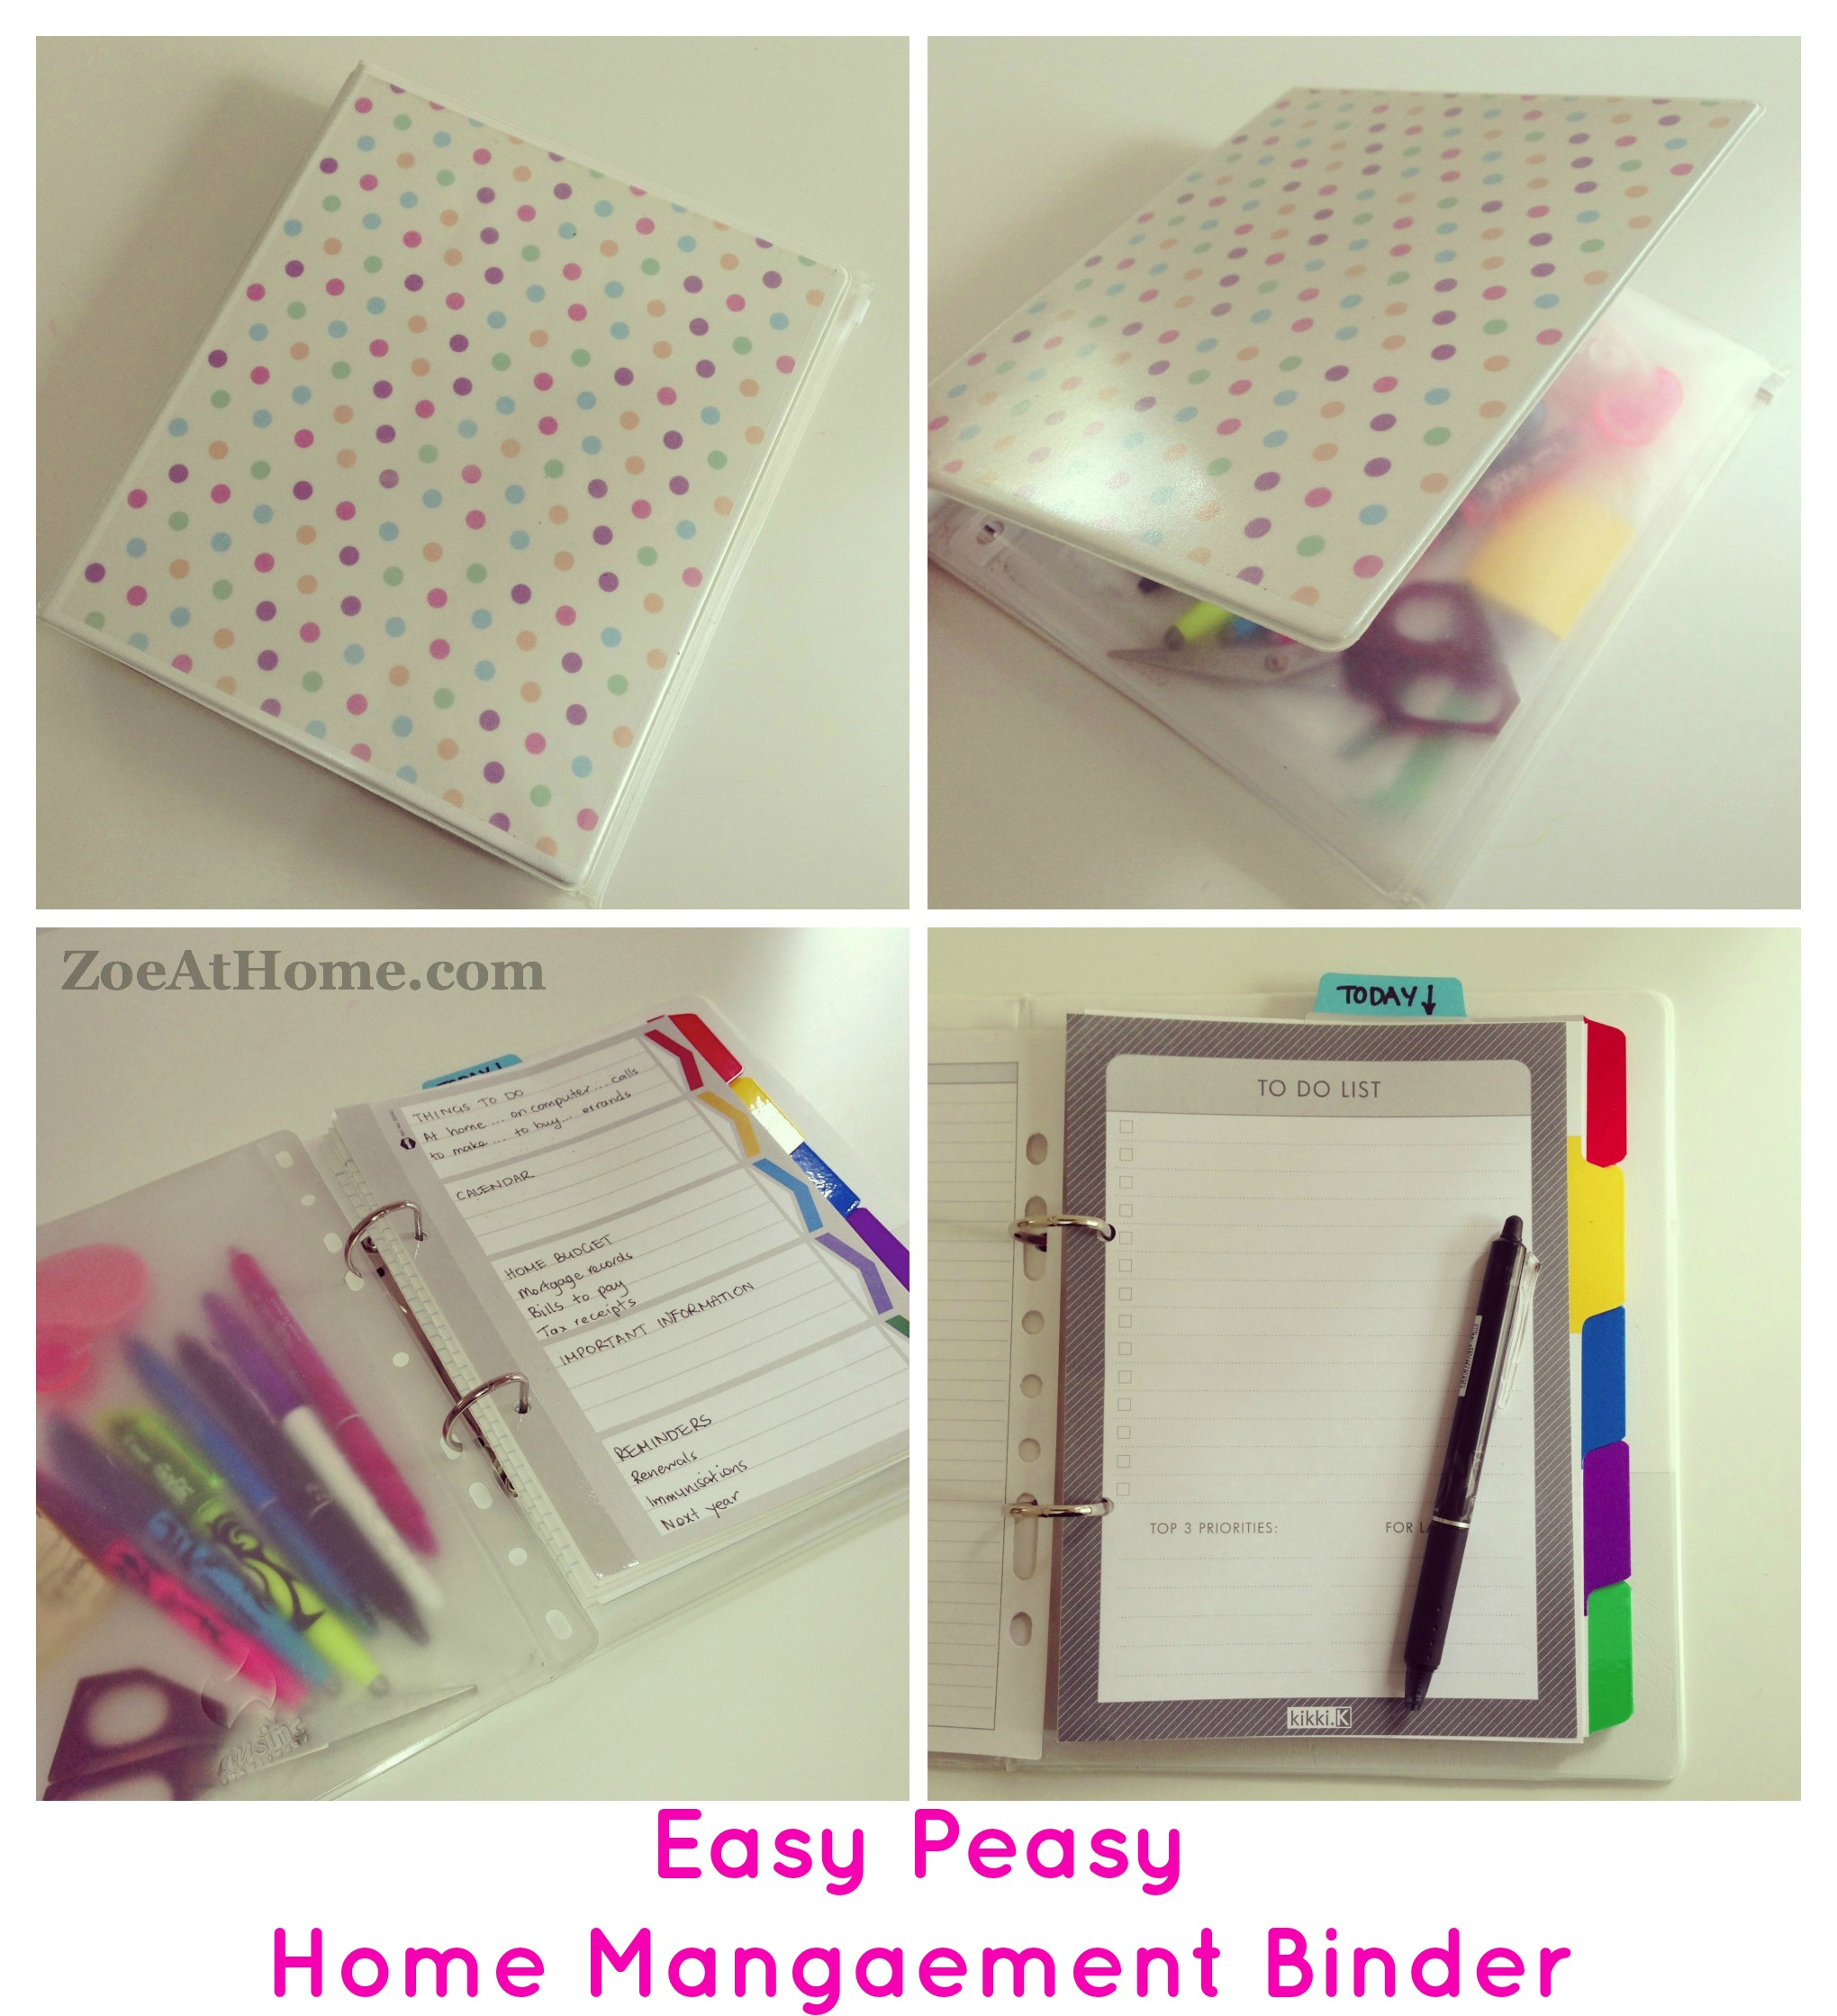 easy peasy home management binder or diy planner « zoeathome